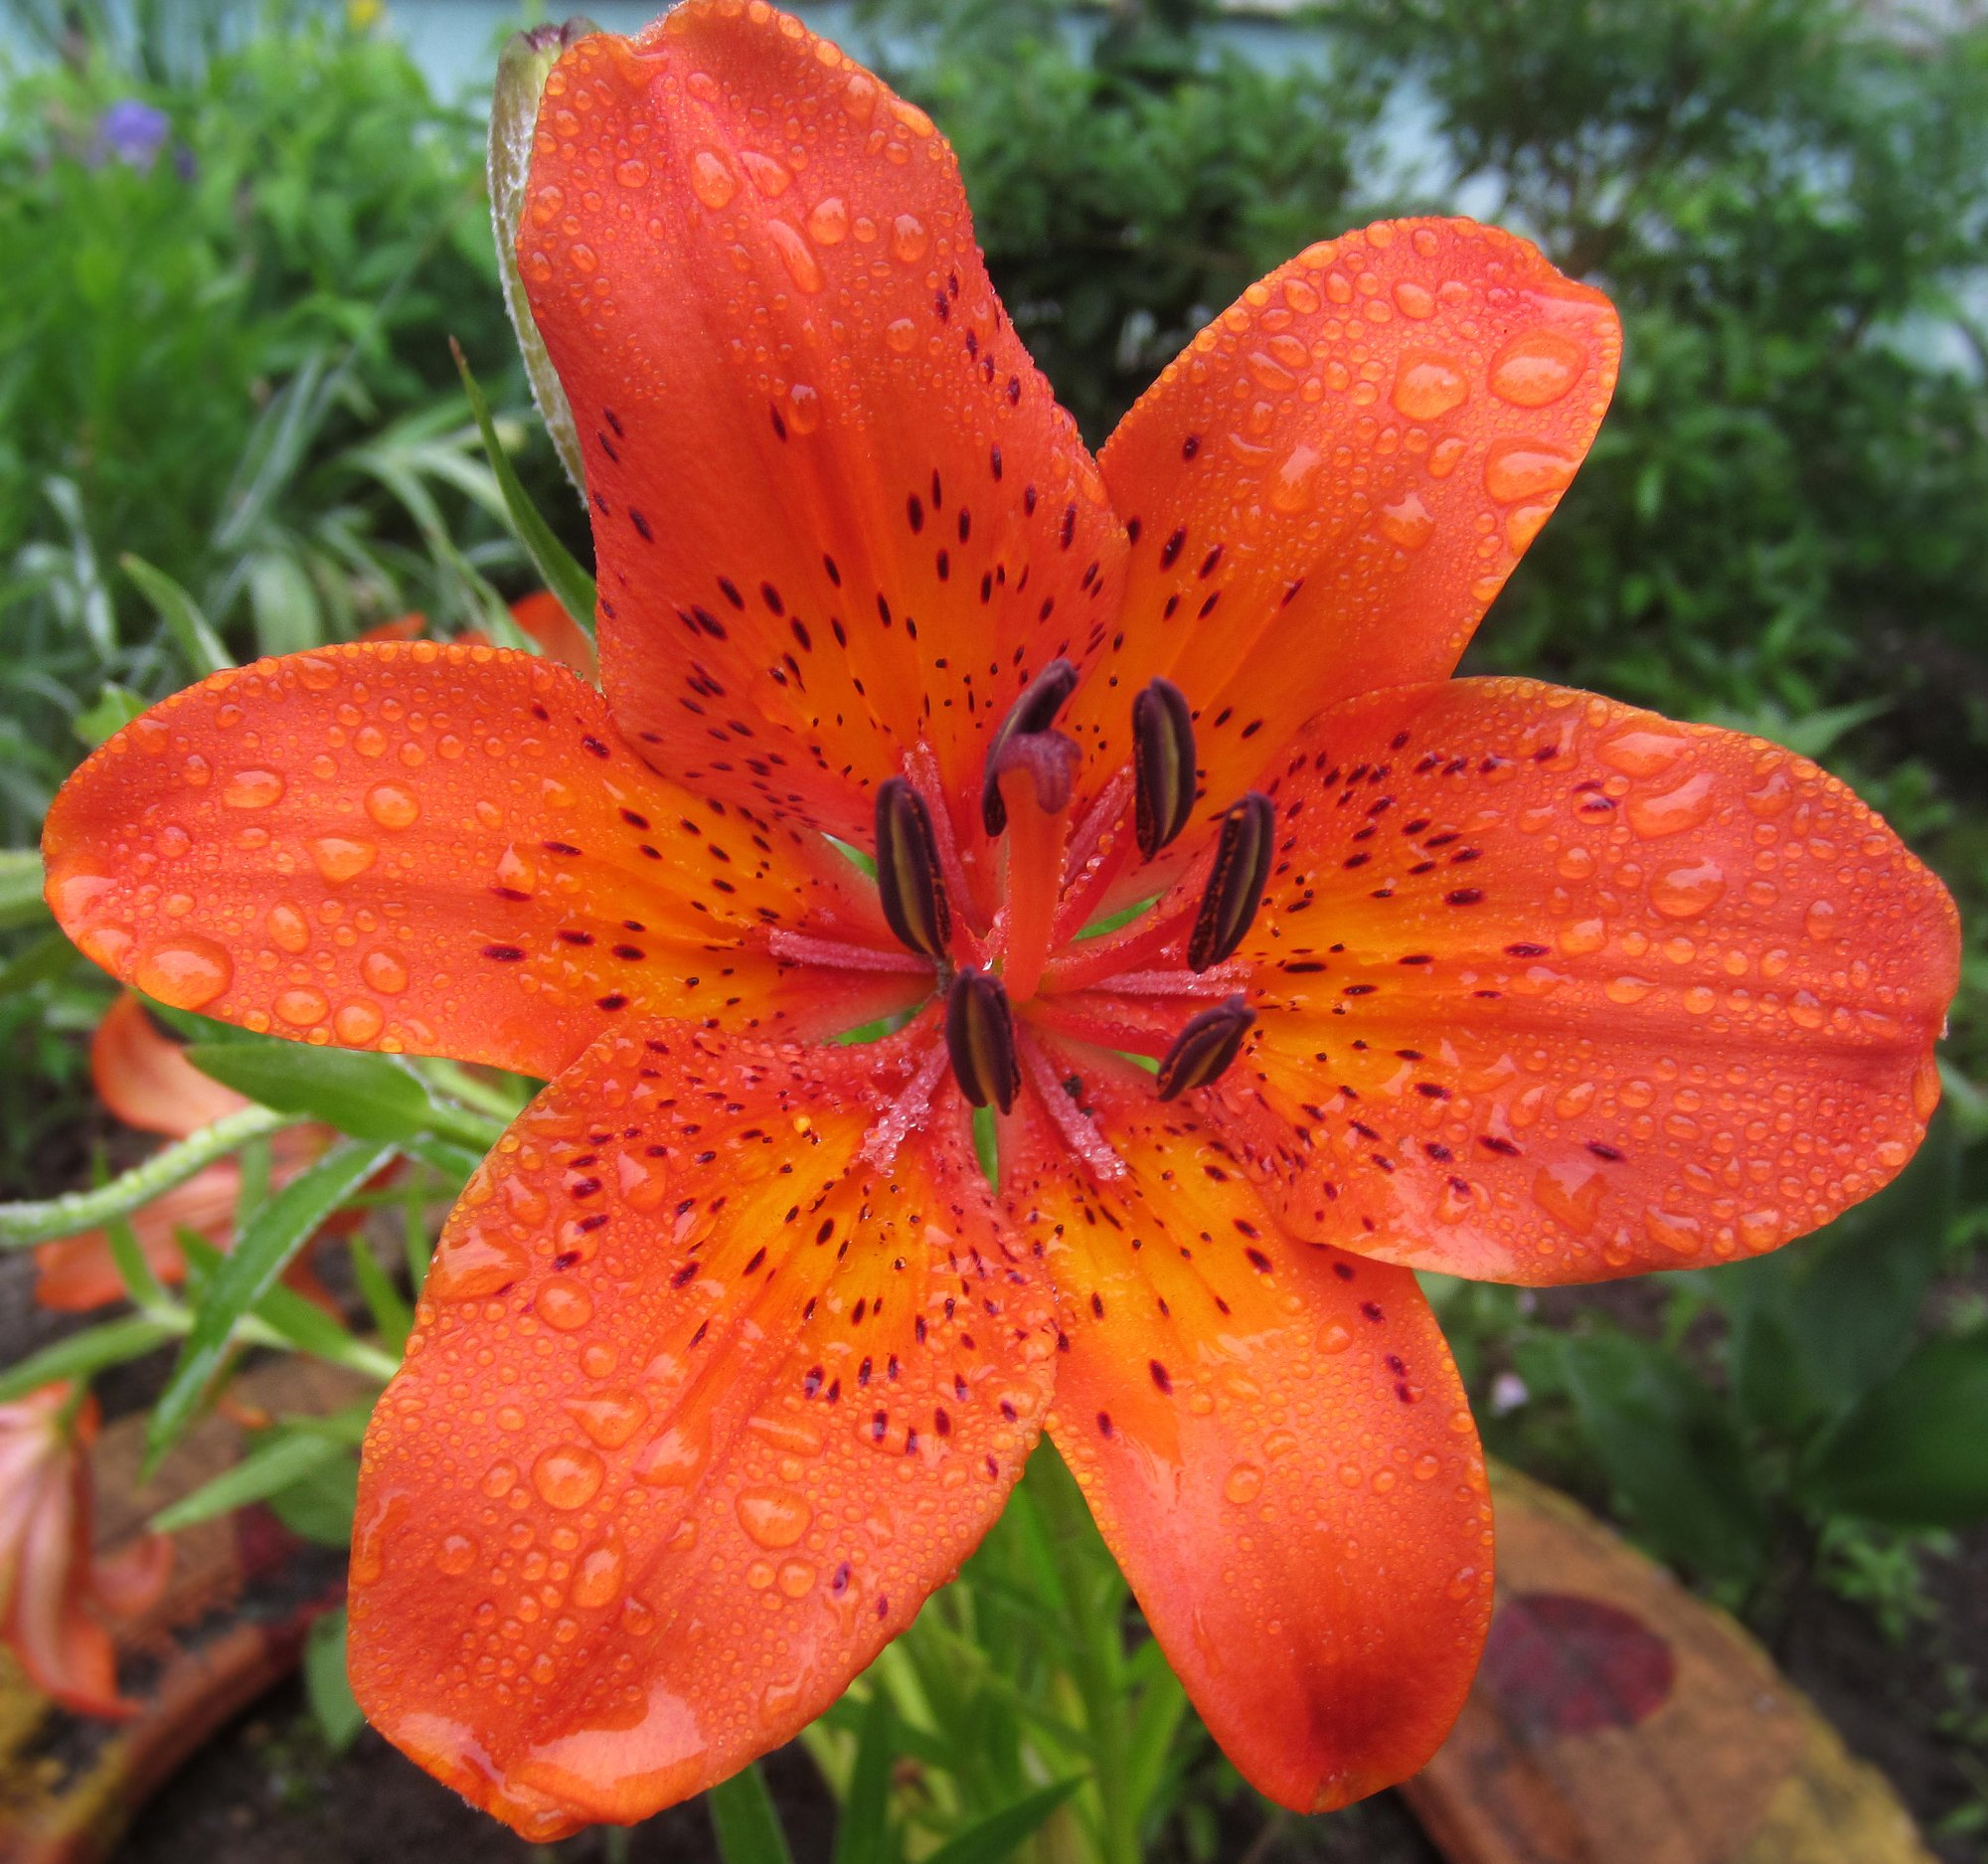 Fire Lily flower